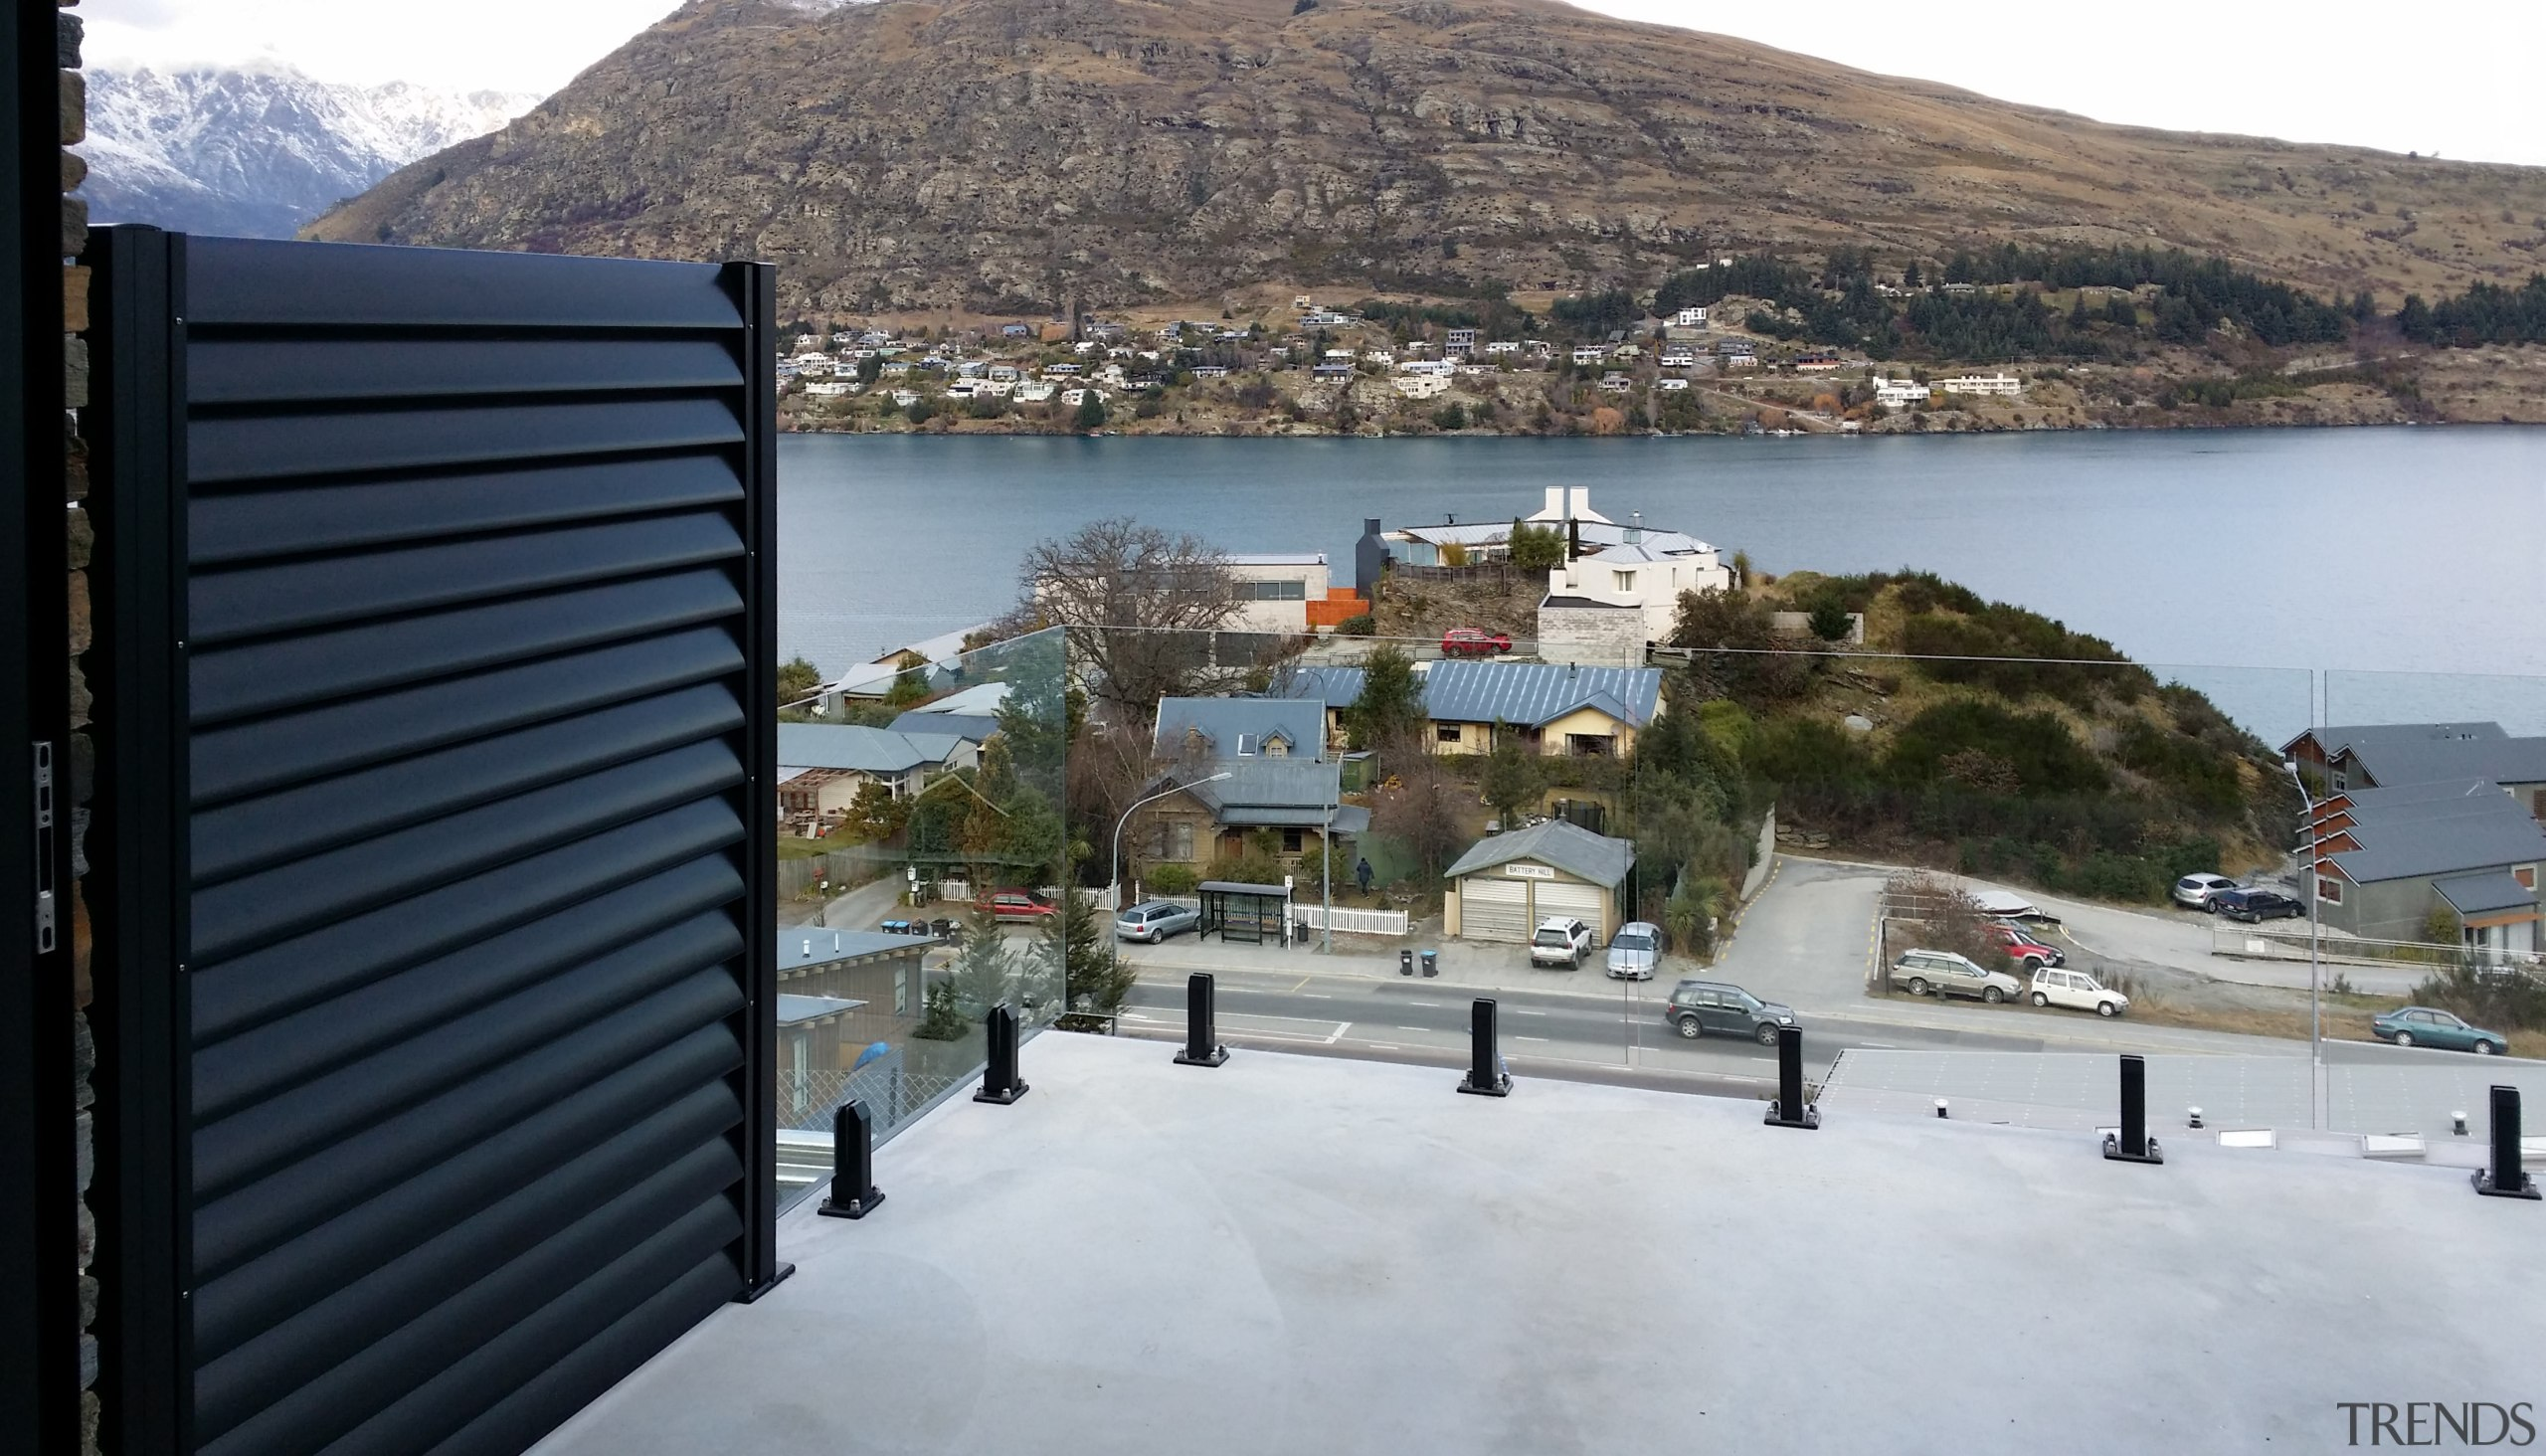 Privacy screens  between decks on this projectwere property, real estate, roof, sea, sky, town, gray, black